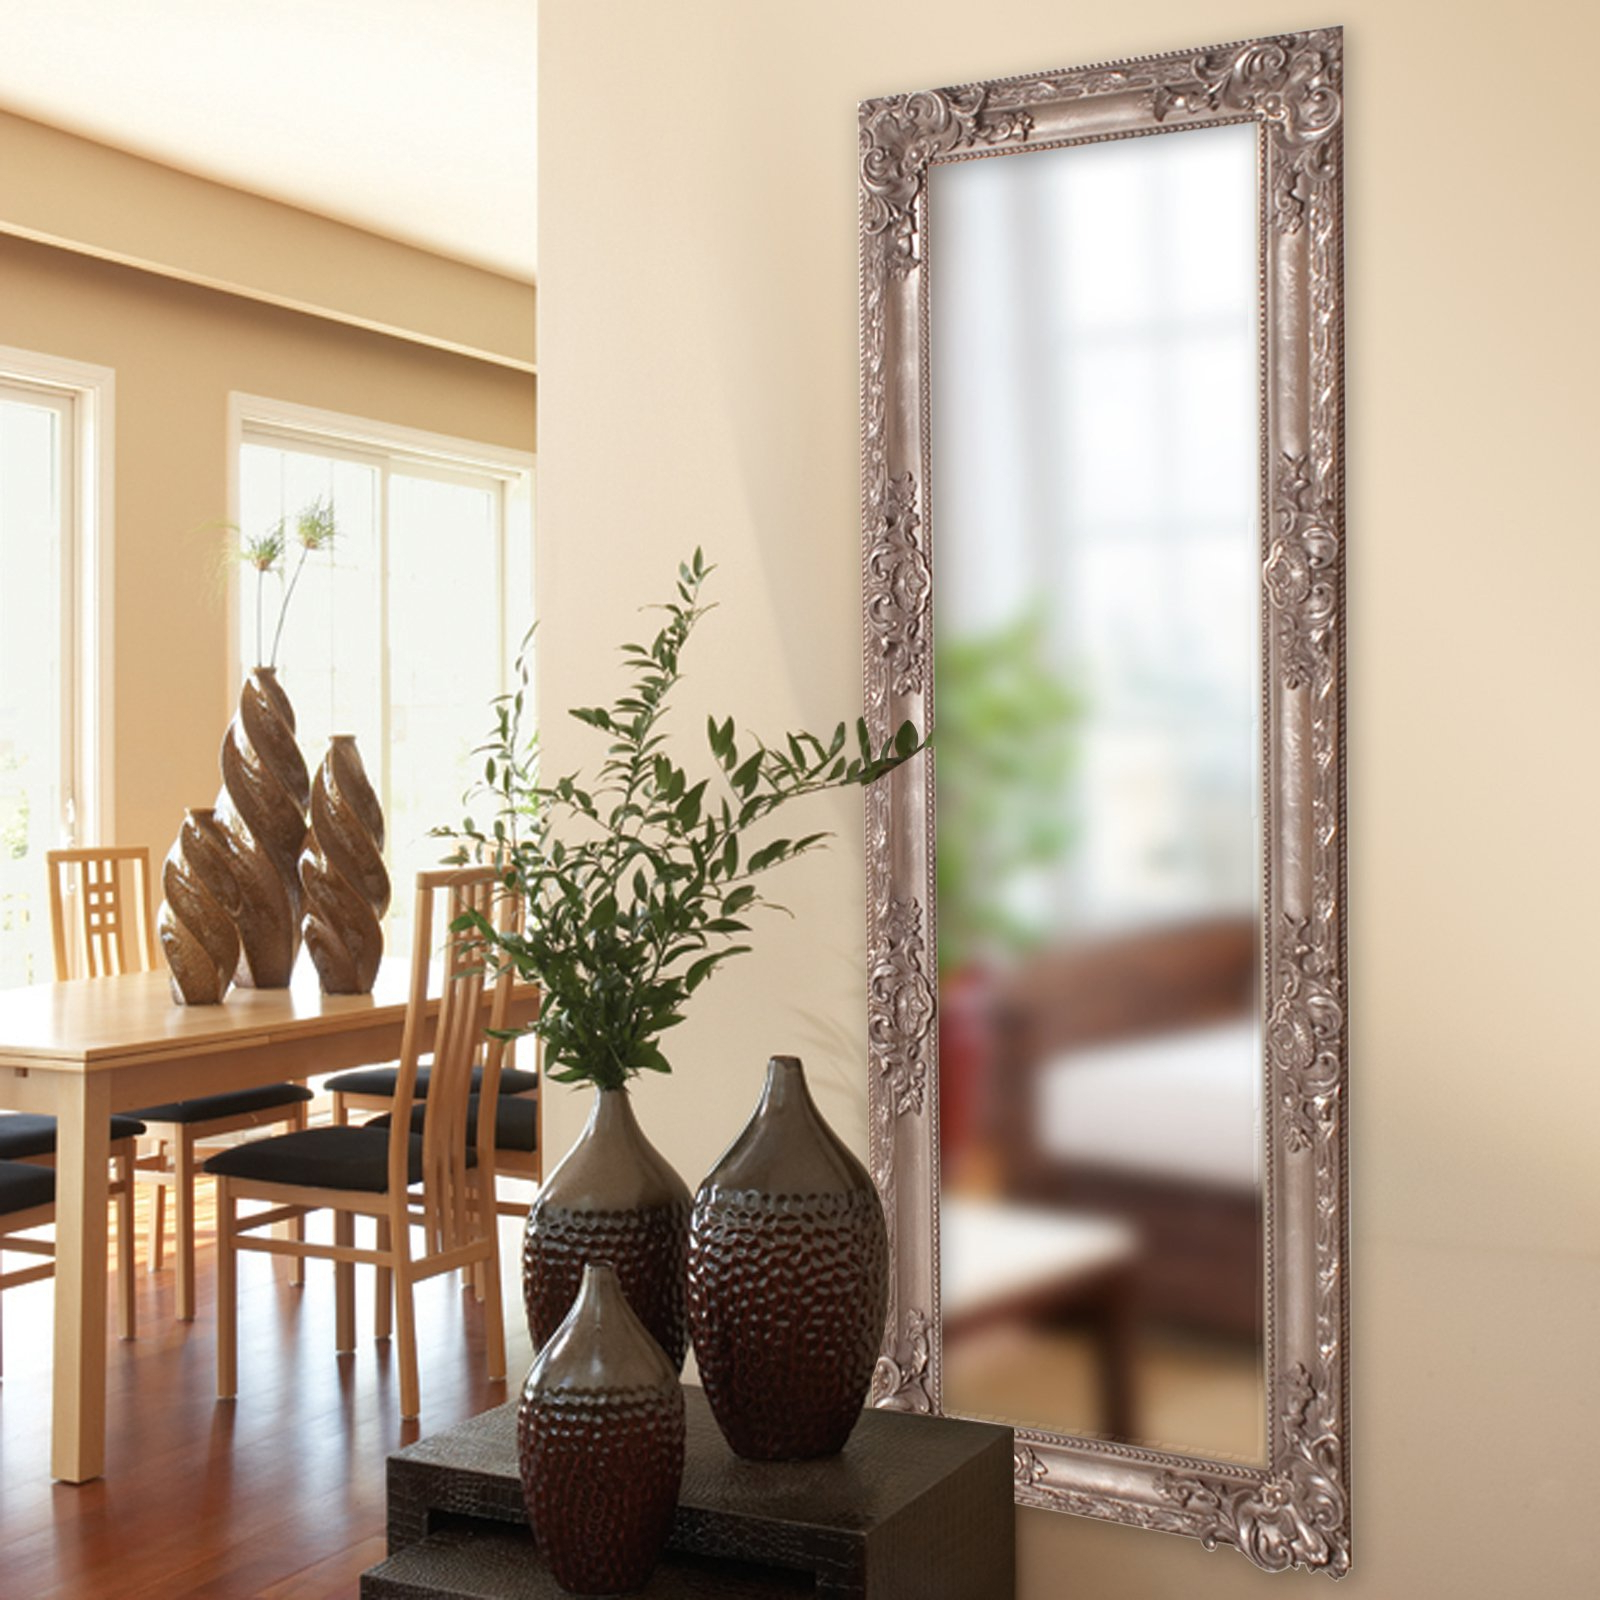 Full Wall Mirrors For Best And Newest Belham Living Carlos Full Length Wall Mirror – 23w X 62h In (View 9 of 20)